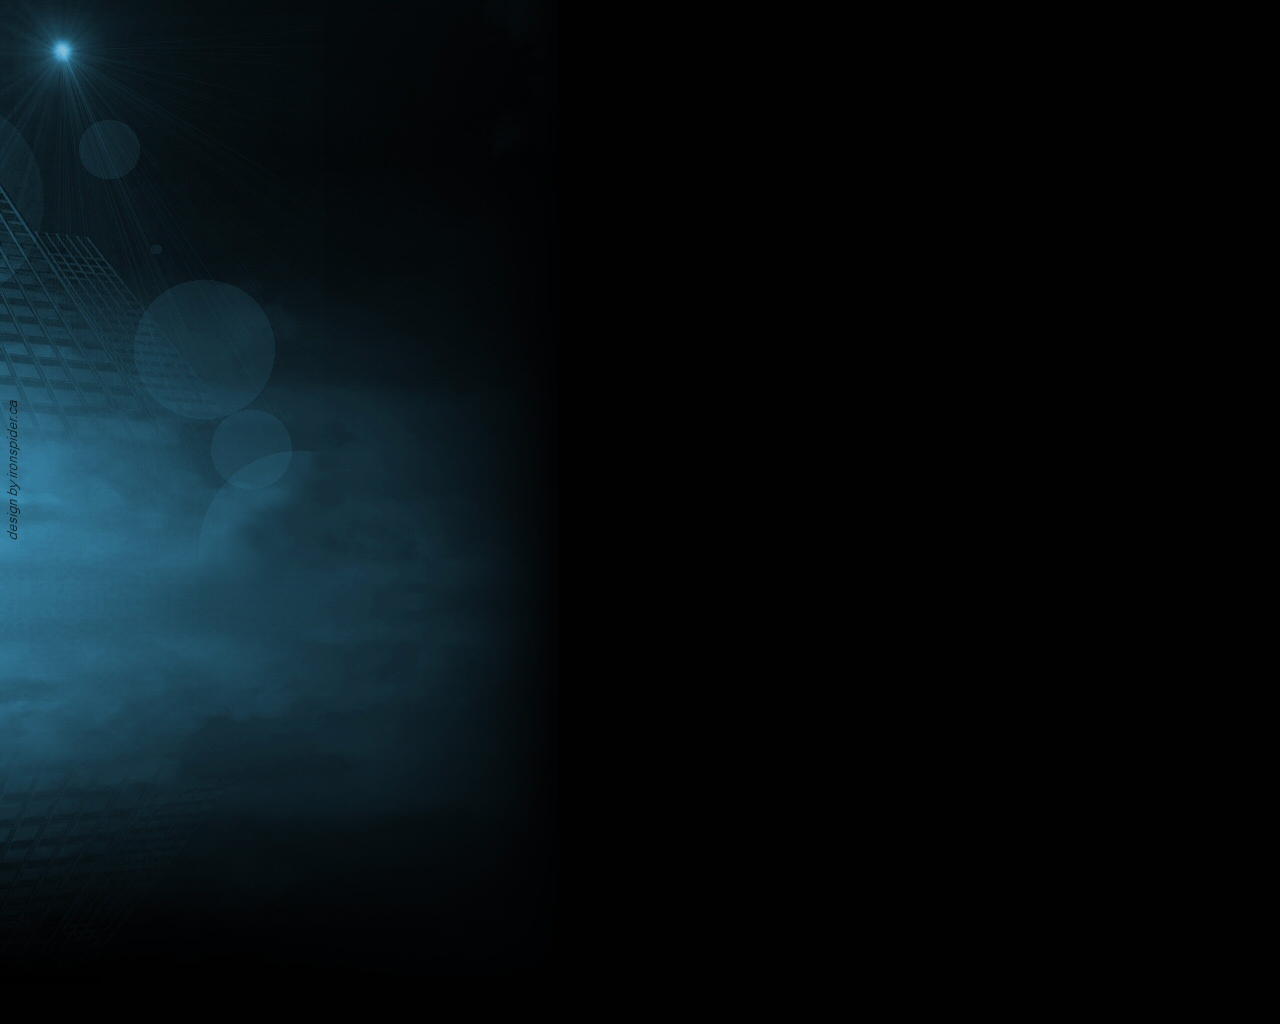 Dark Twitter Backgrounds   Layouts for Twitter Profiles 1280x1024